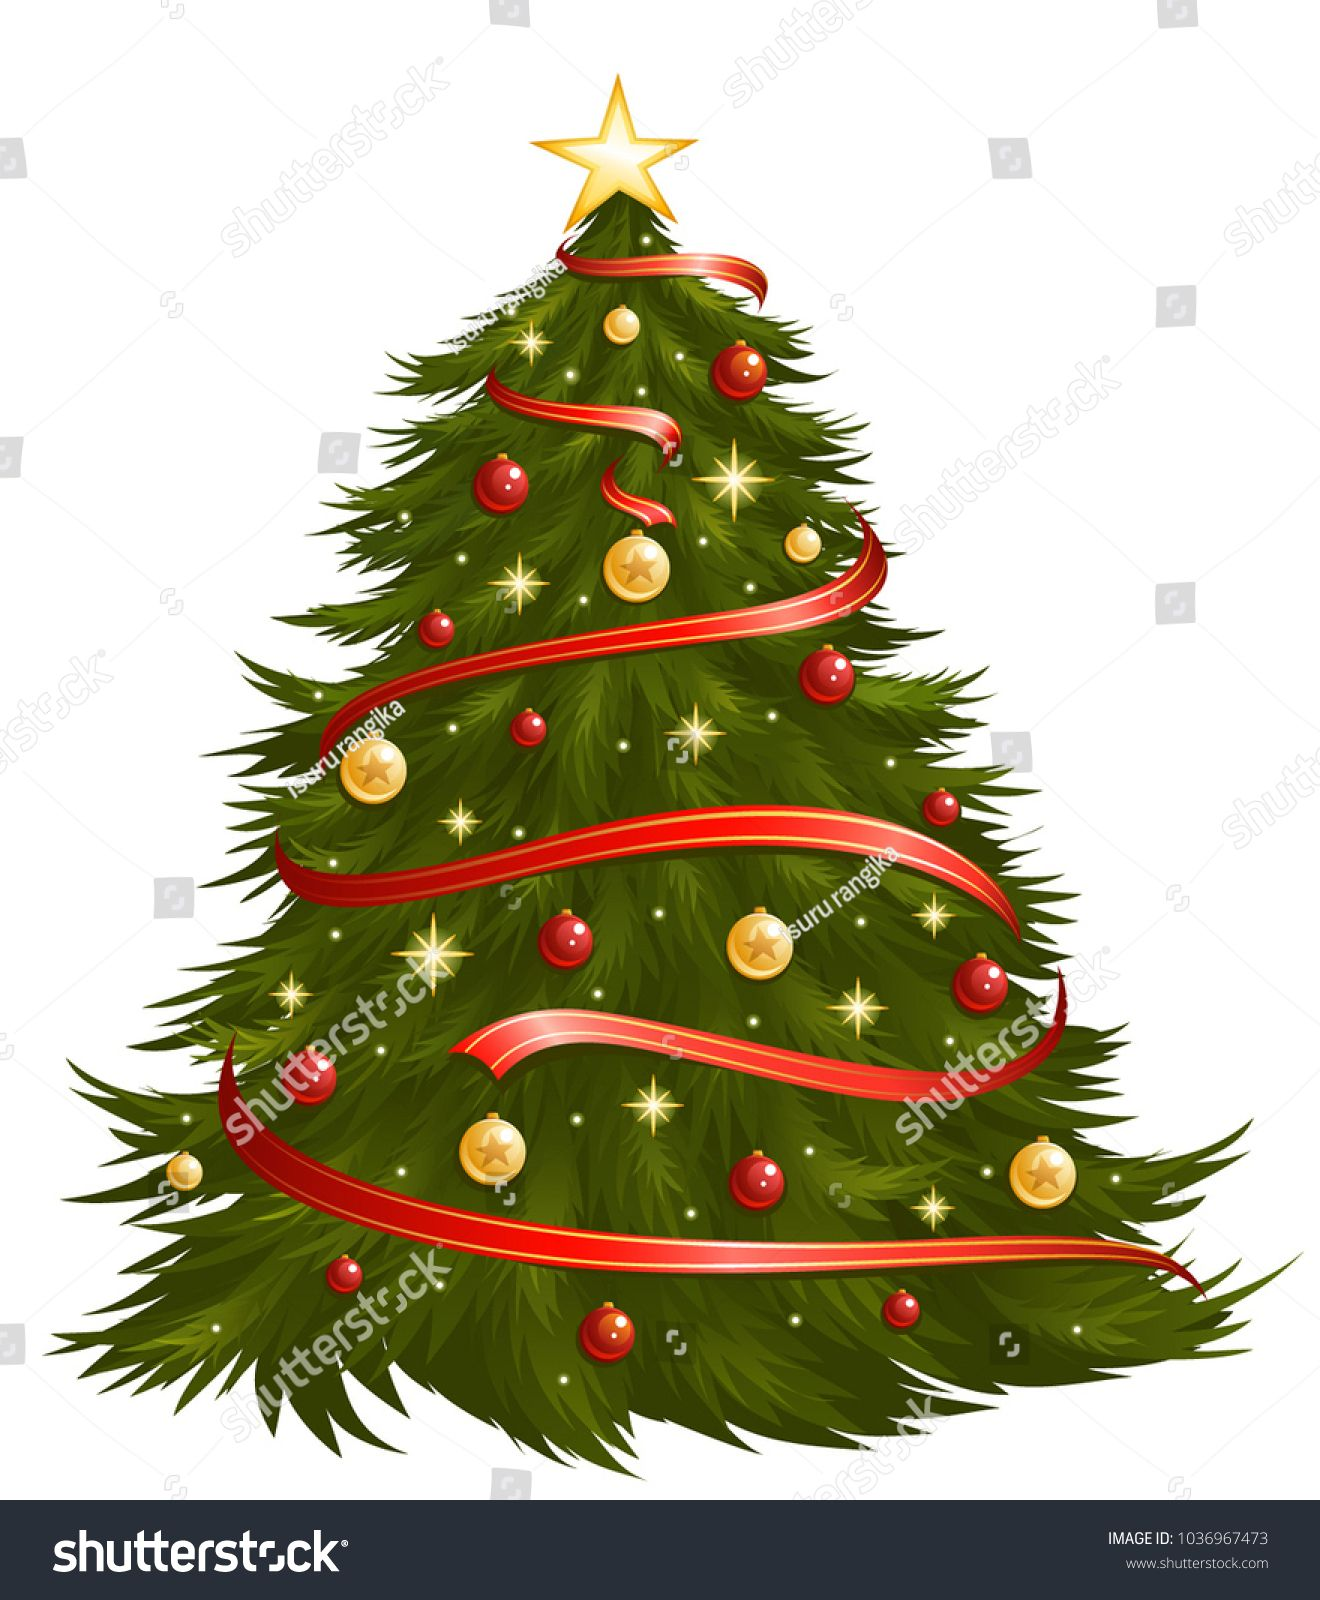 Christmas Tree Vector Christmas Tree Vector Christmas Tree Clipart Christmas Images Free Christmas Images